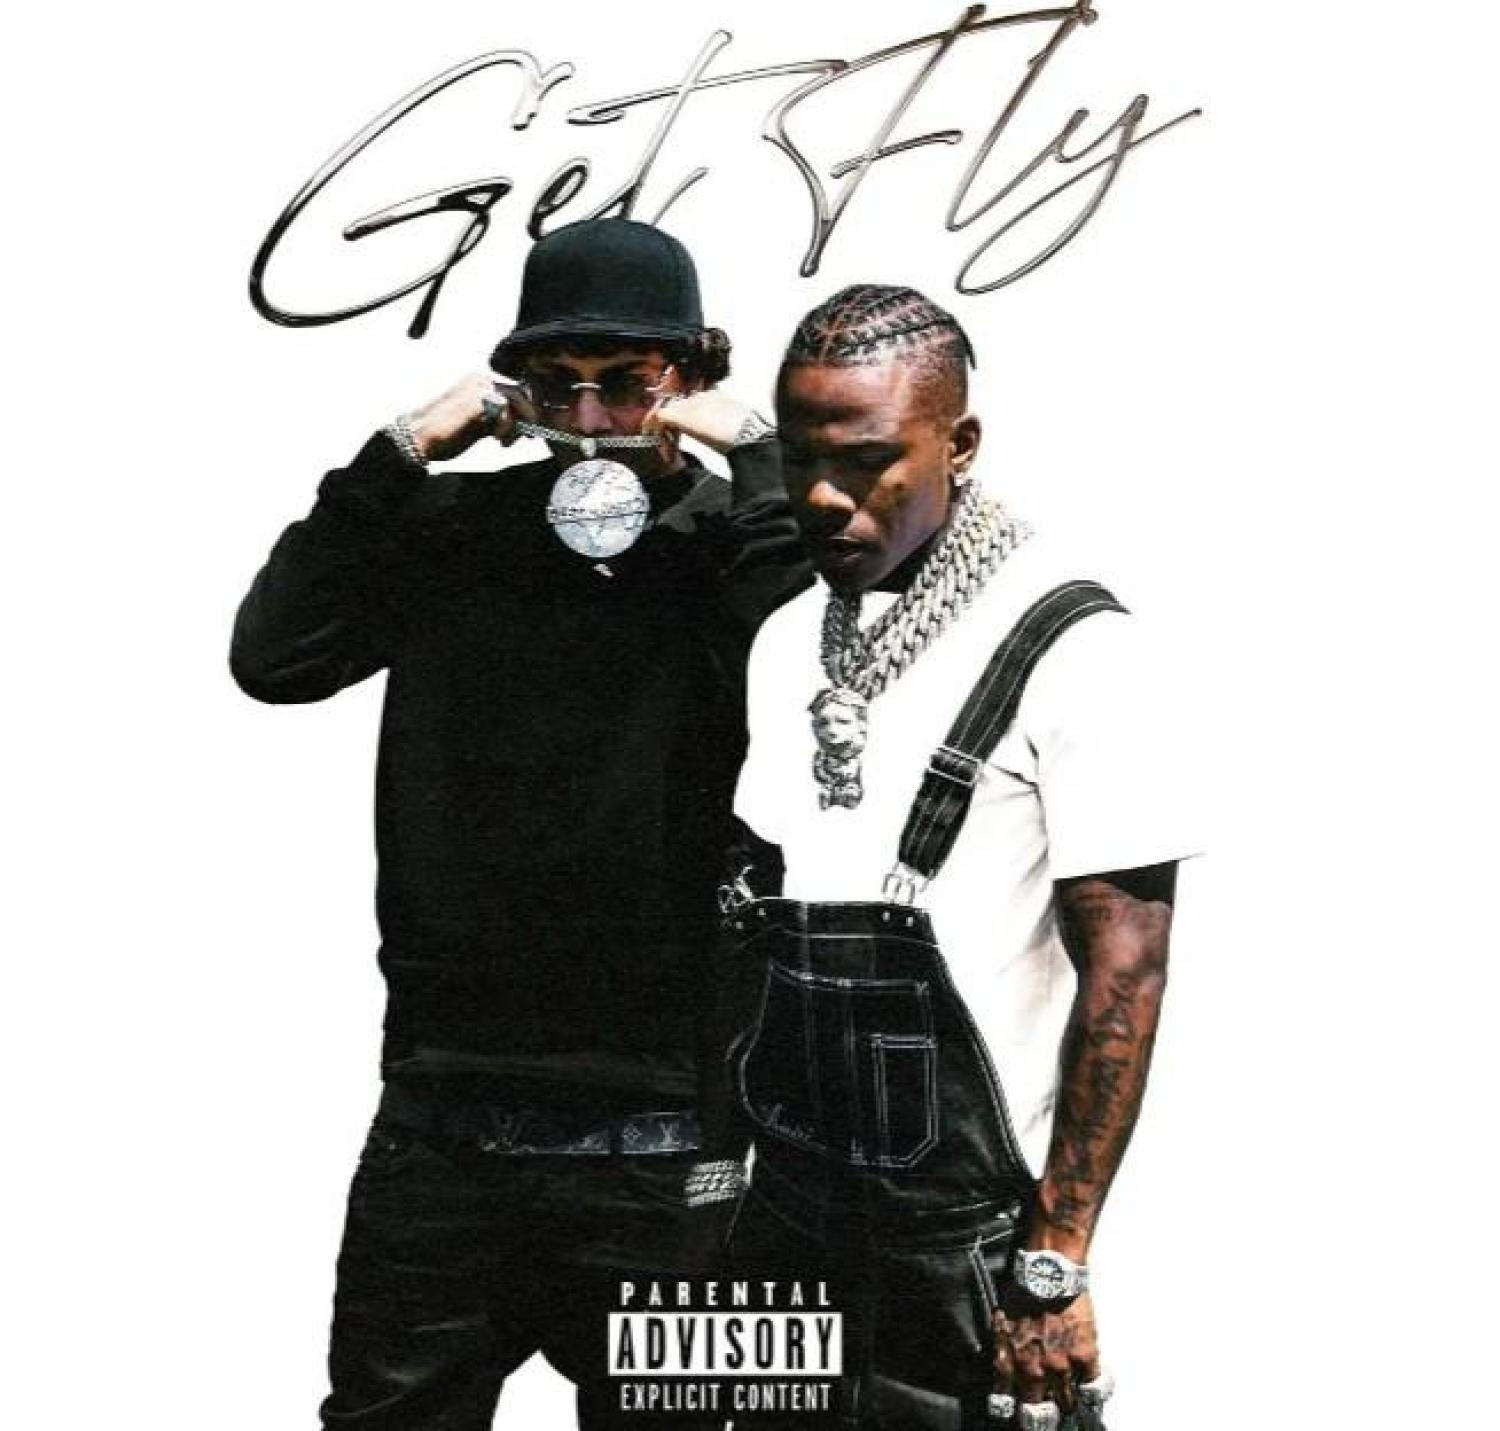 DOWNLOAD MP3: OhGeesy ft. DaBaby – Get Fly AUDIO 320kbps